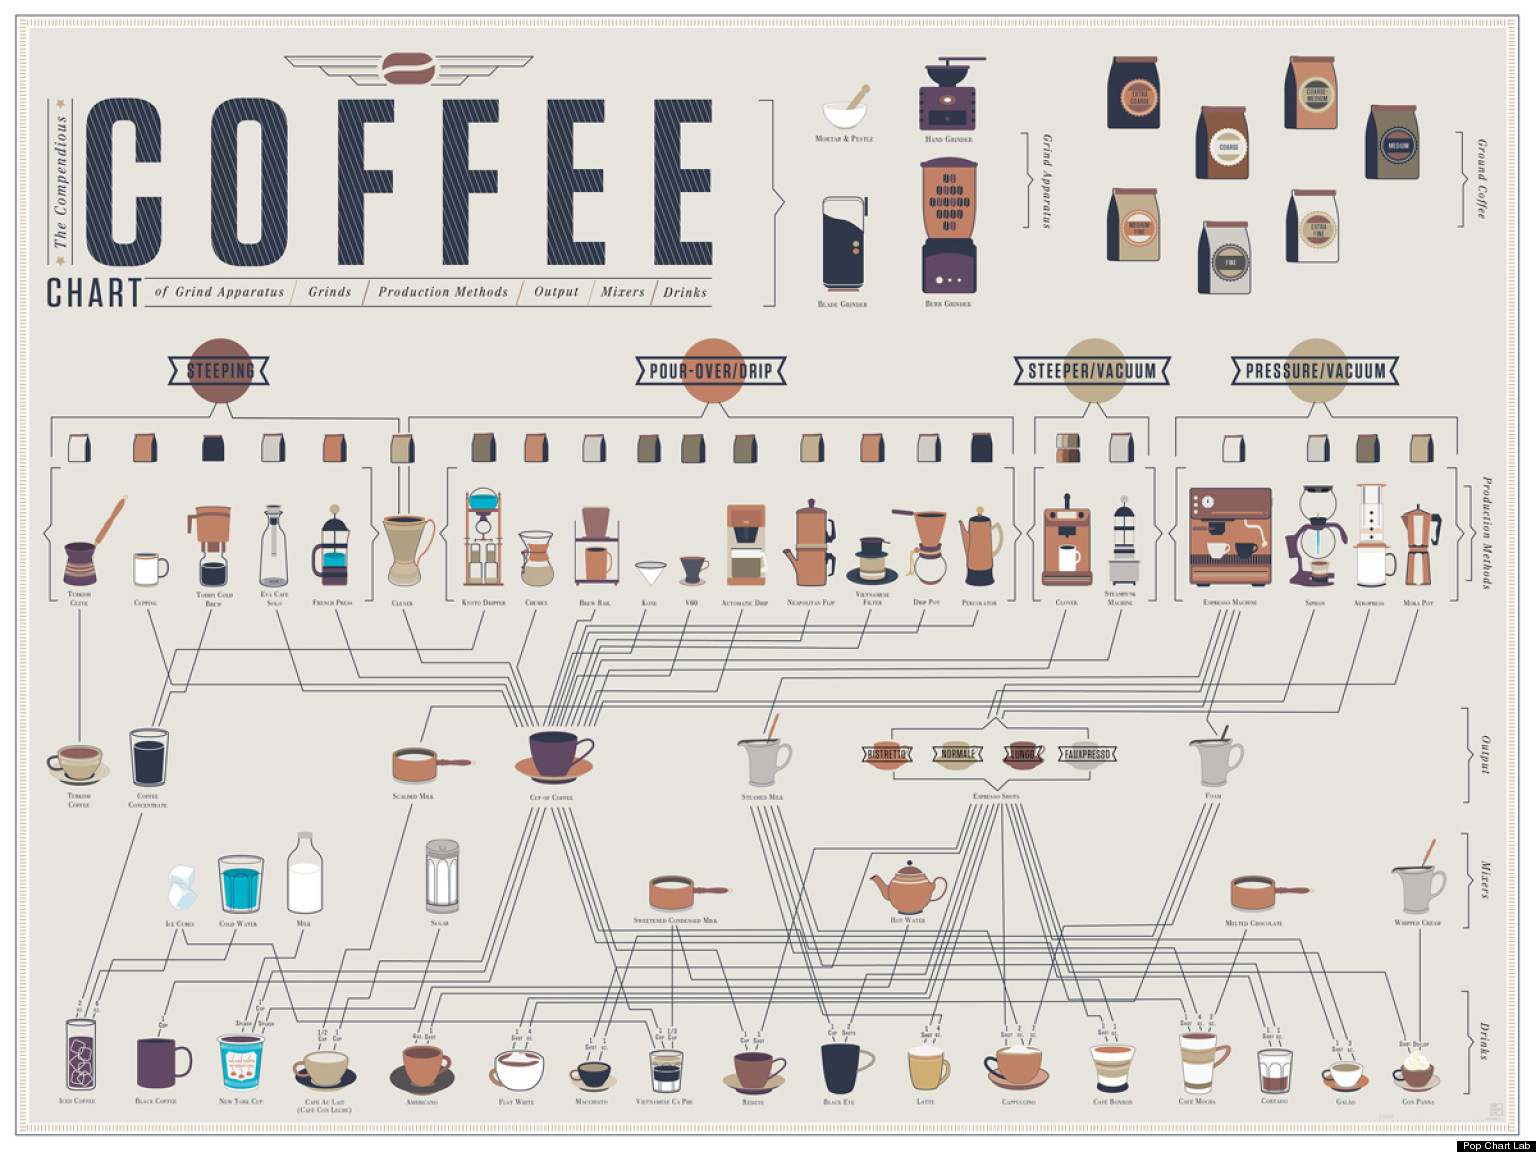 confusing process flow diagram tekonsha wiring prodigy how to make every kind of coffee (infographic)   huffpost